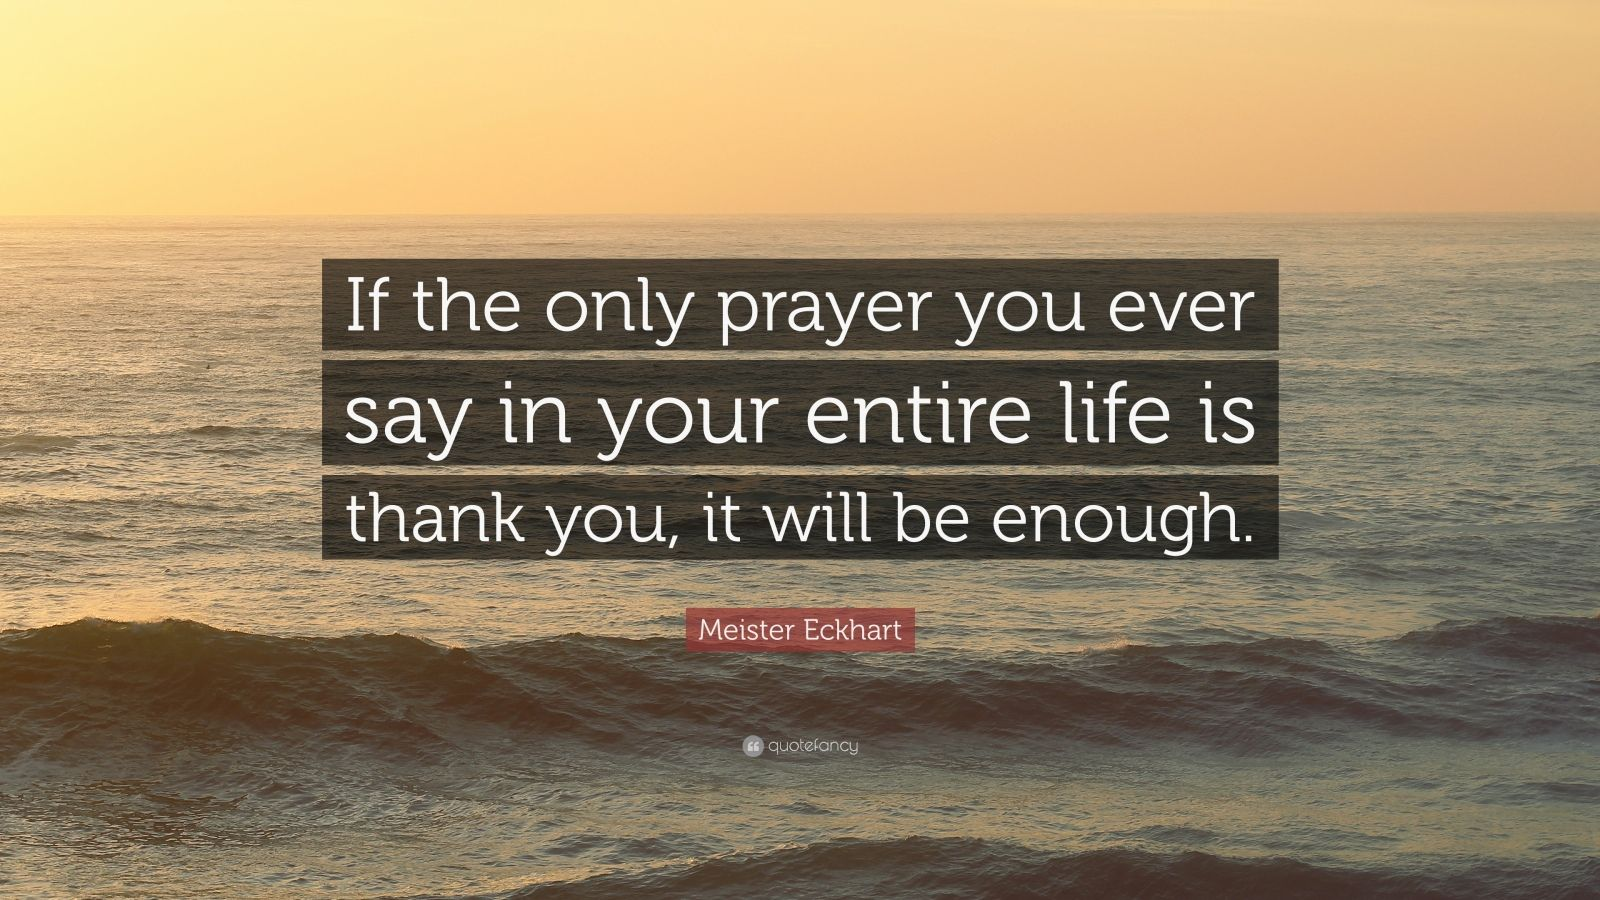 Meister Eckhart Quote: If the only prayer you ever say in